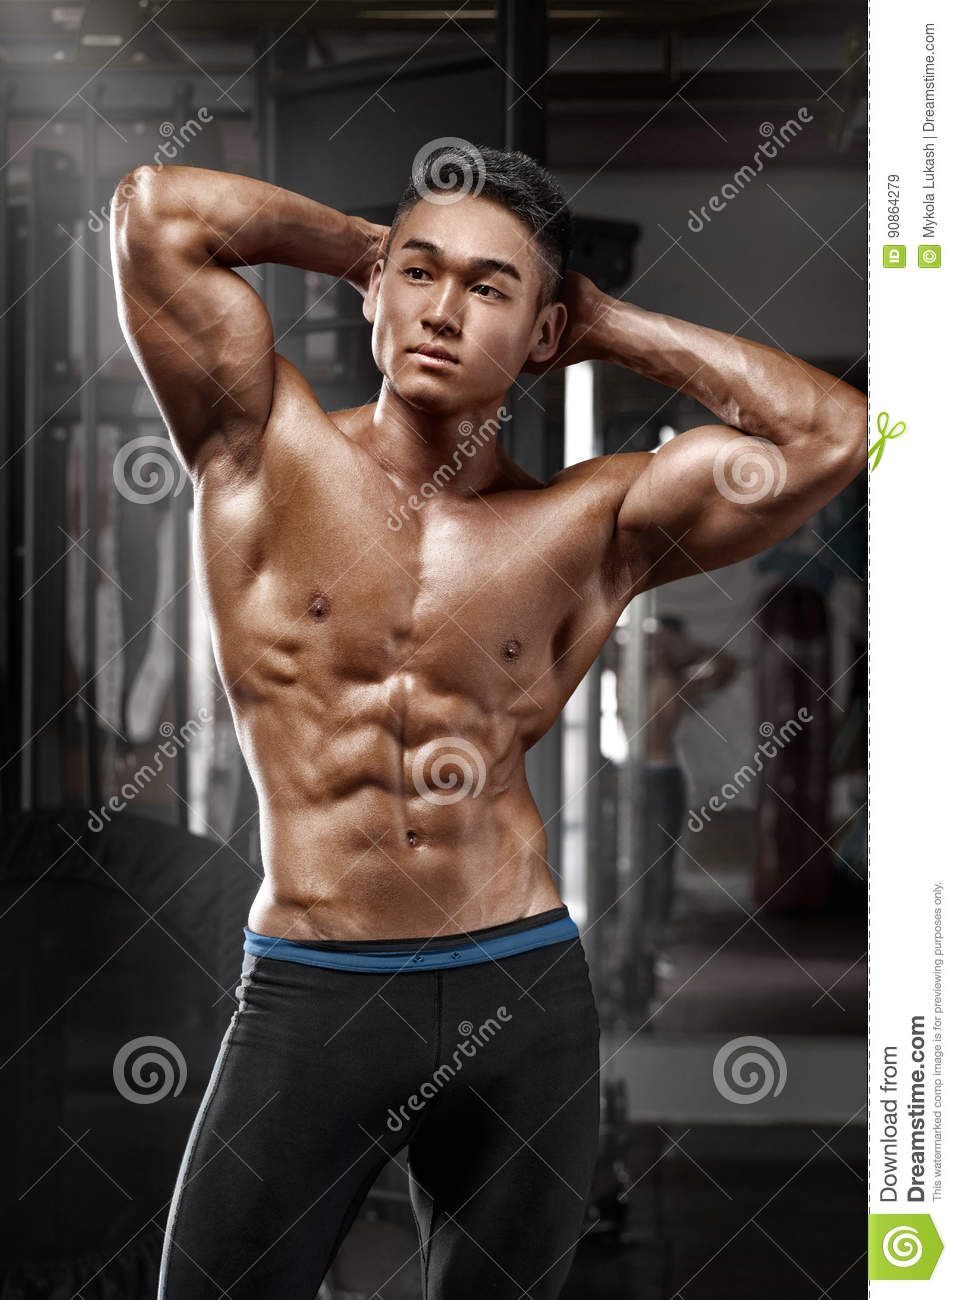 Muscular Man Posing In Gym, Shaped Abdominal. Strong Male